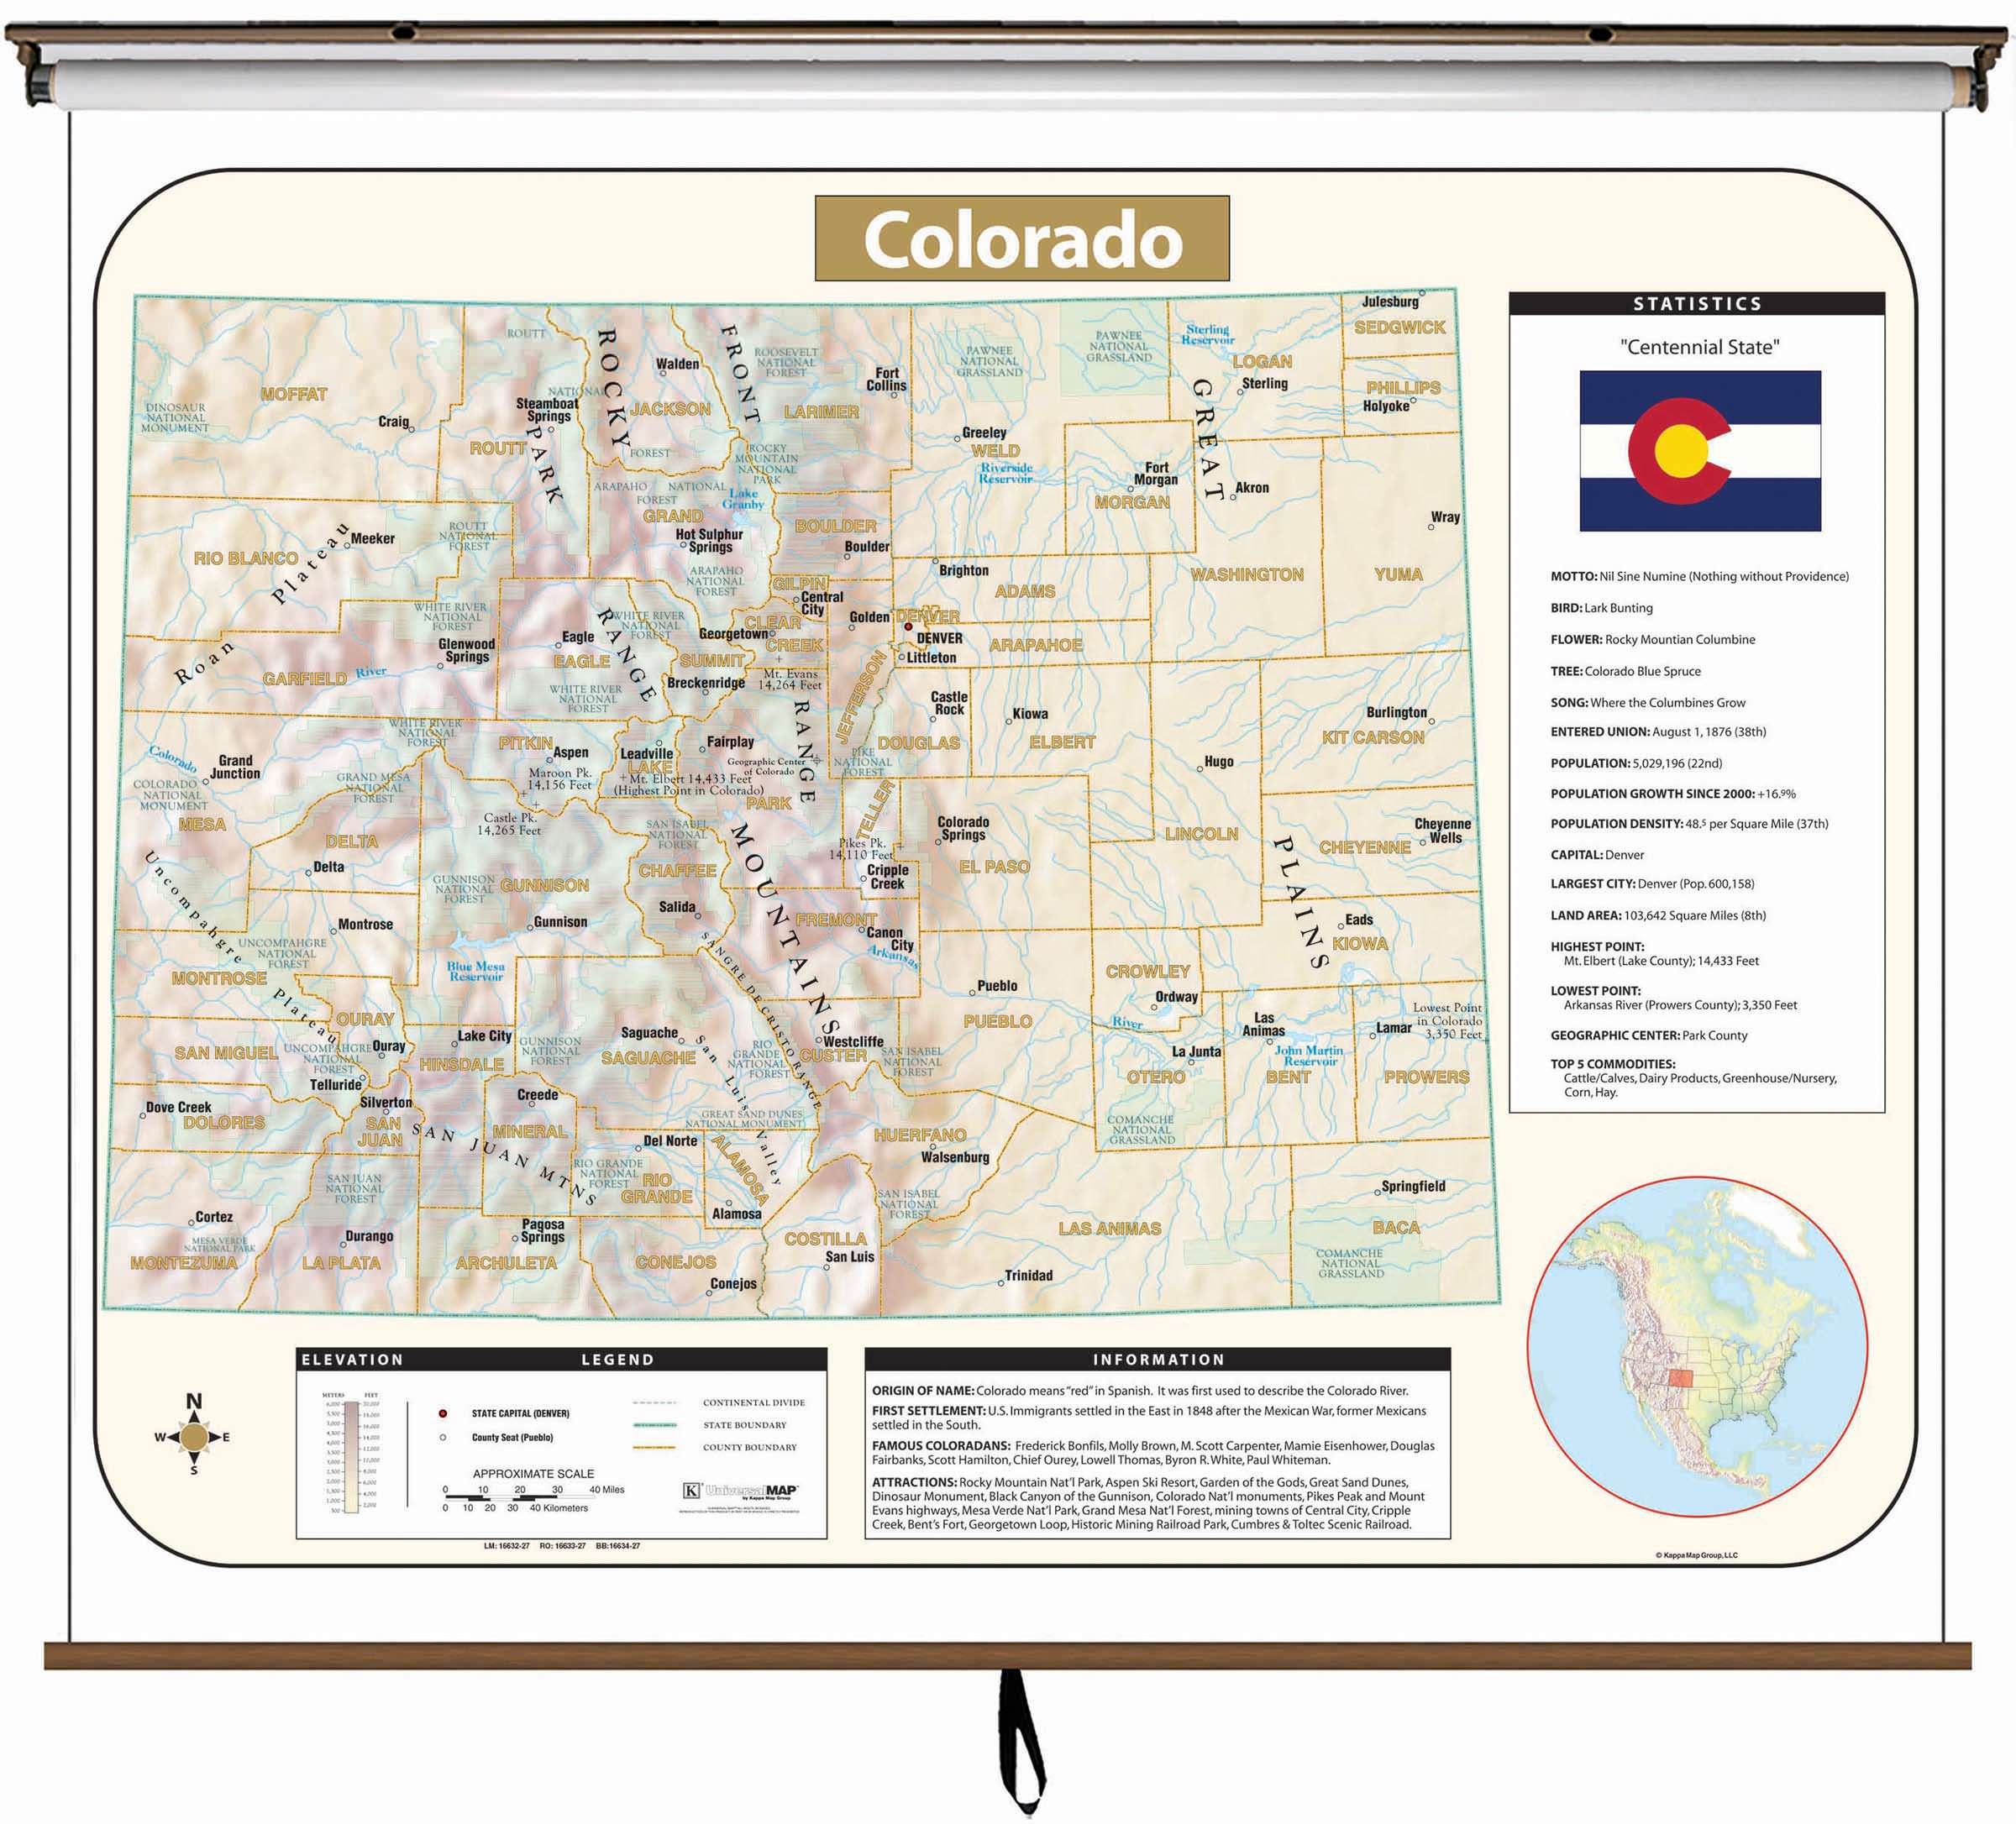 Akron Colorado Map.Colorado Large Scale Shaded Relief Wall Map On Roller With Backboard